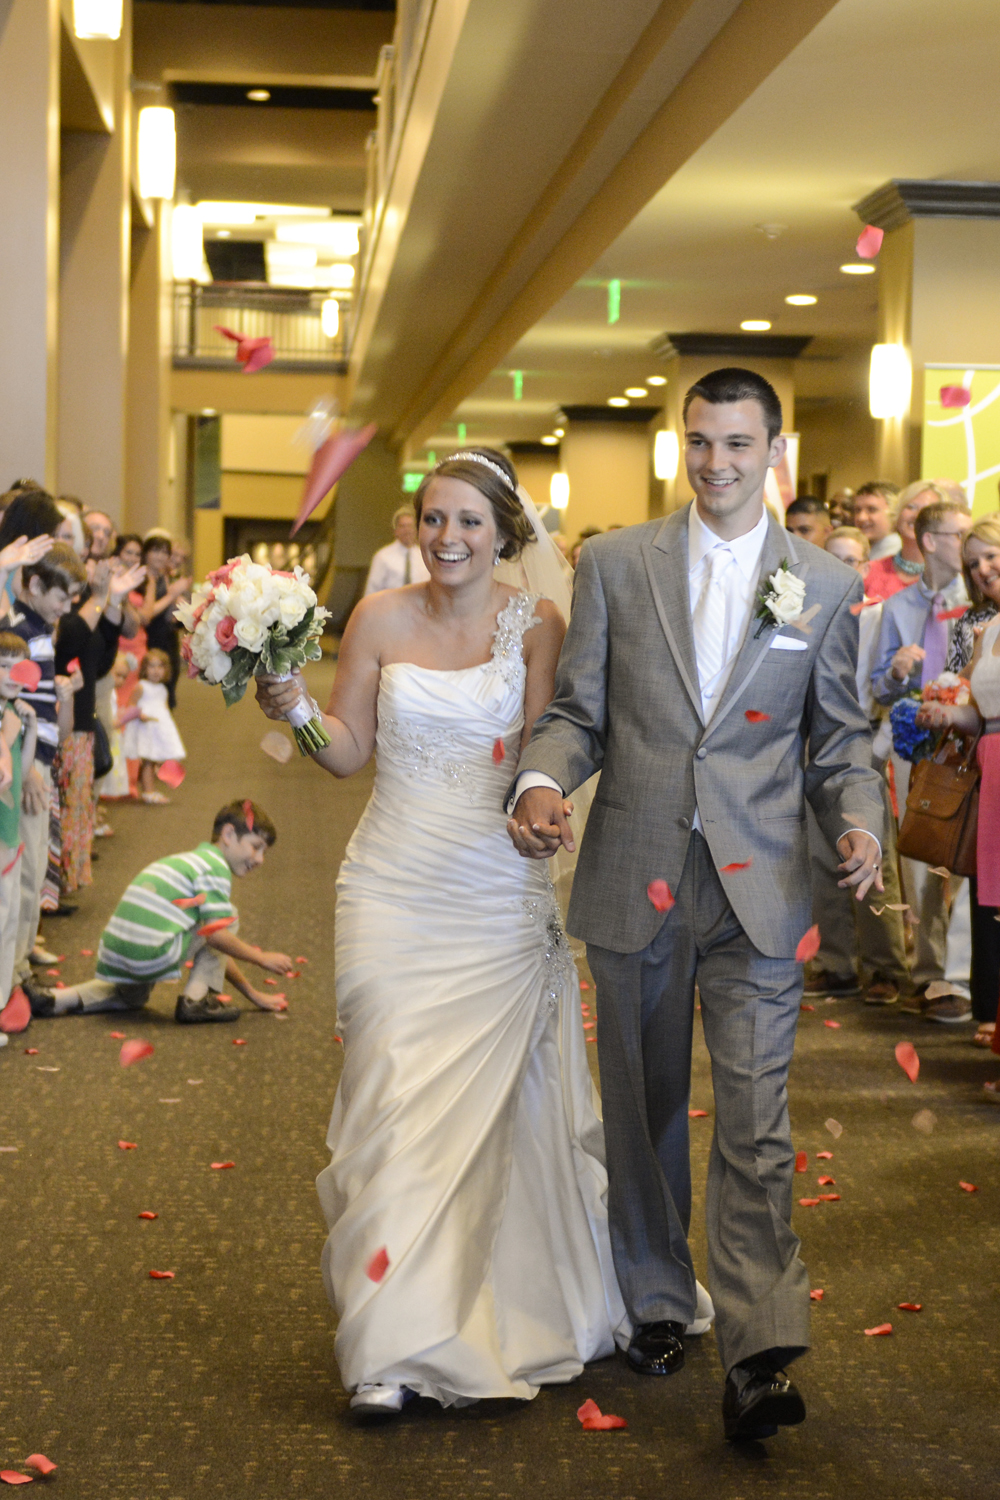 Bride and groom exit in coral pink flower petals